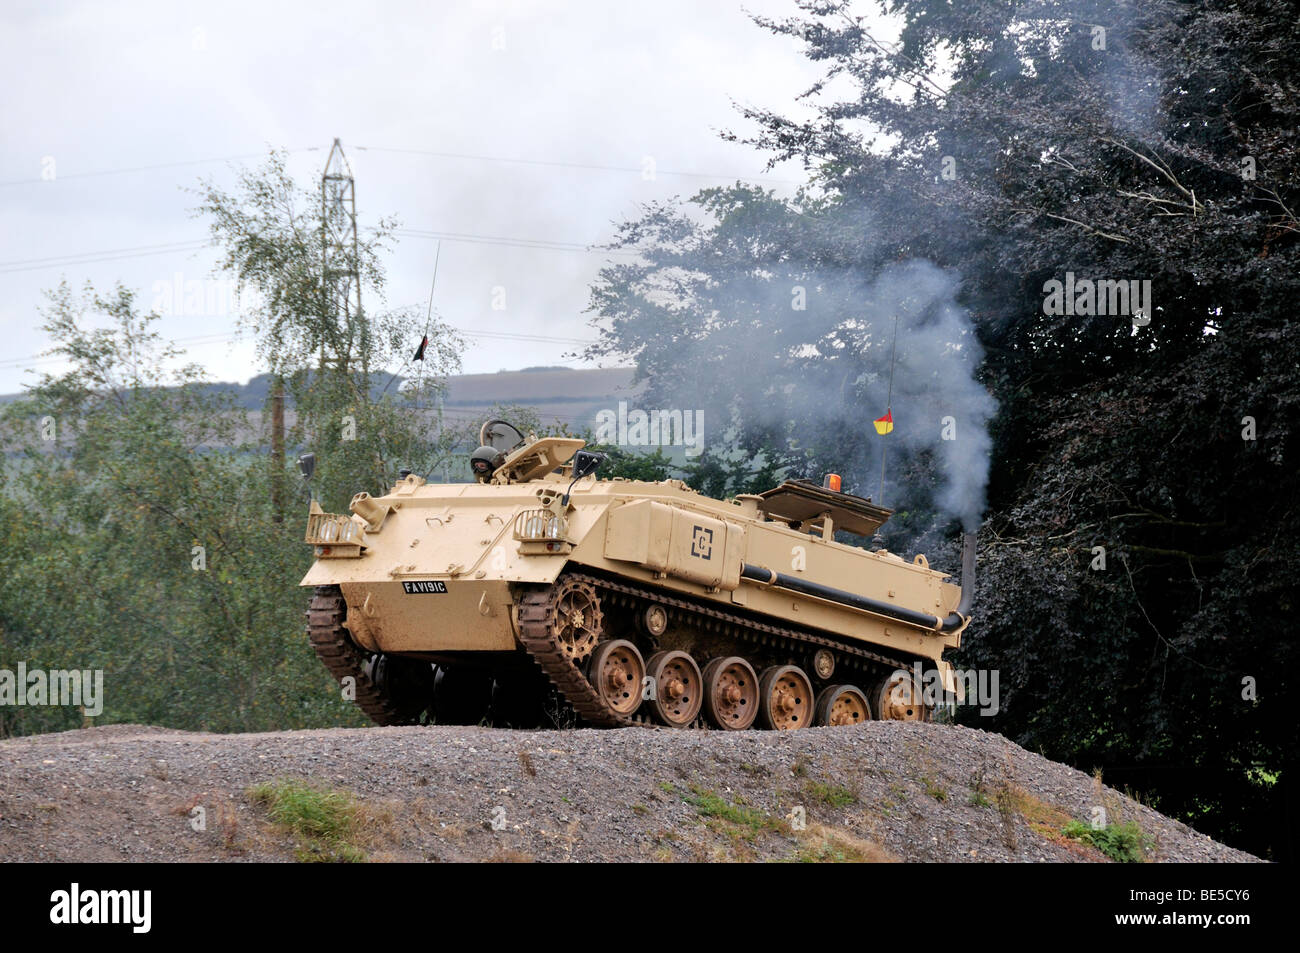 British FV432 armoured personnel carrier military vehicle - Stock Image